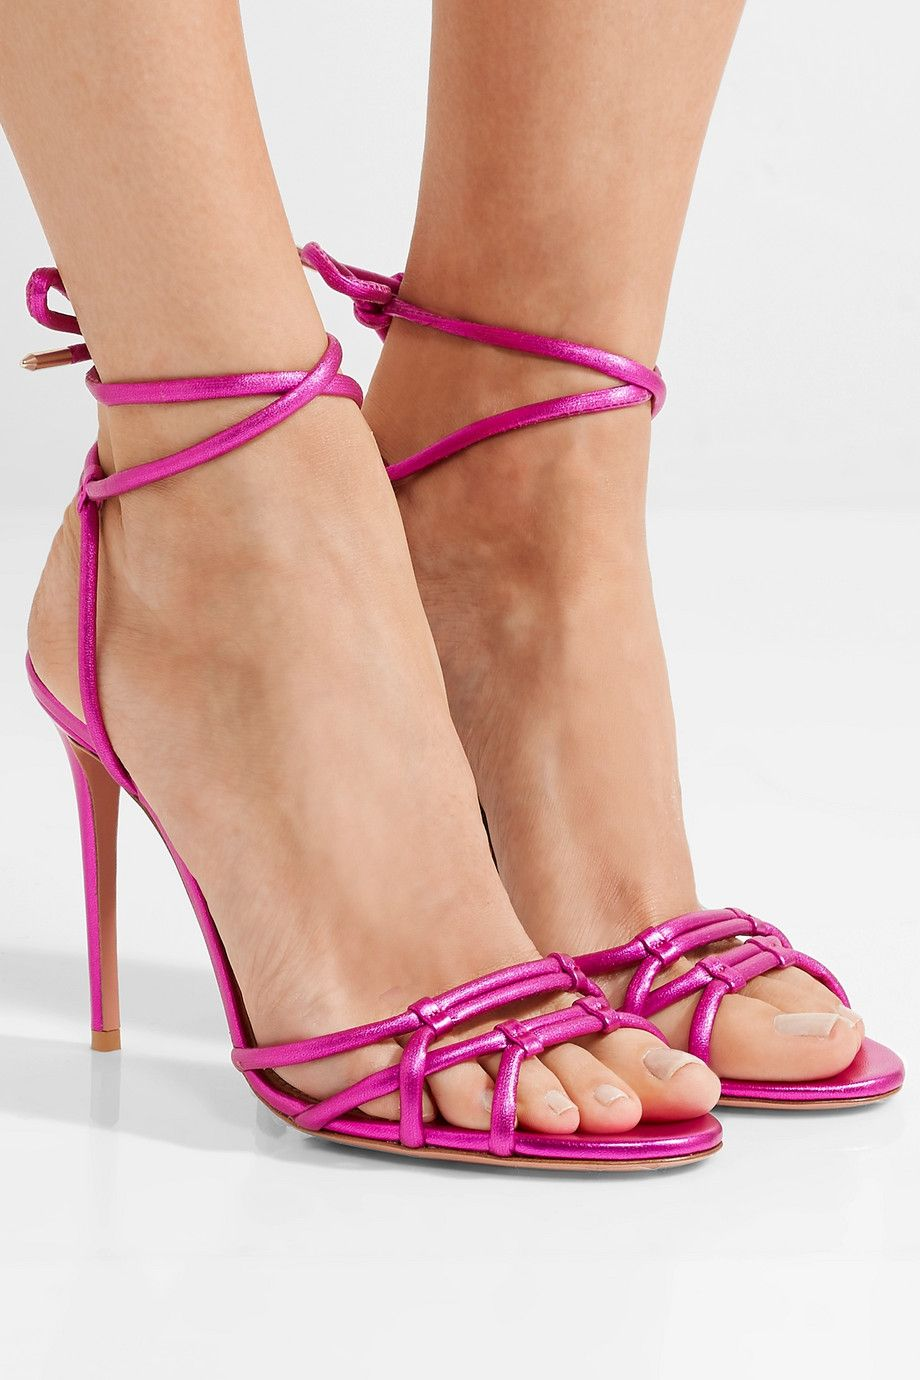 Aquazzura Laura Metallic Leather Sandals - Magenta